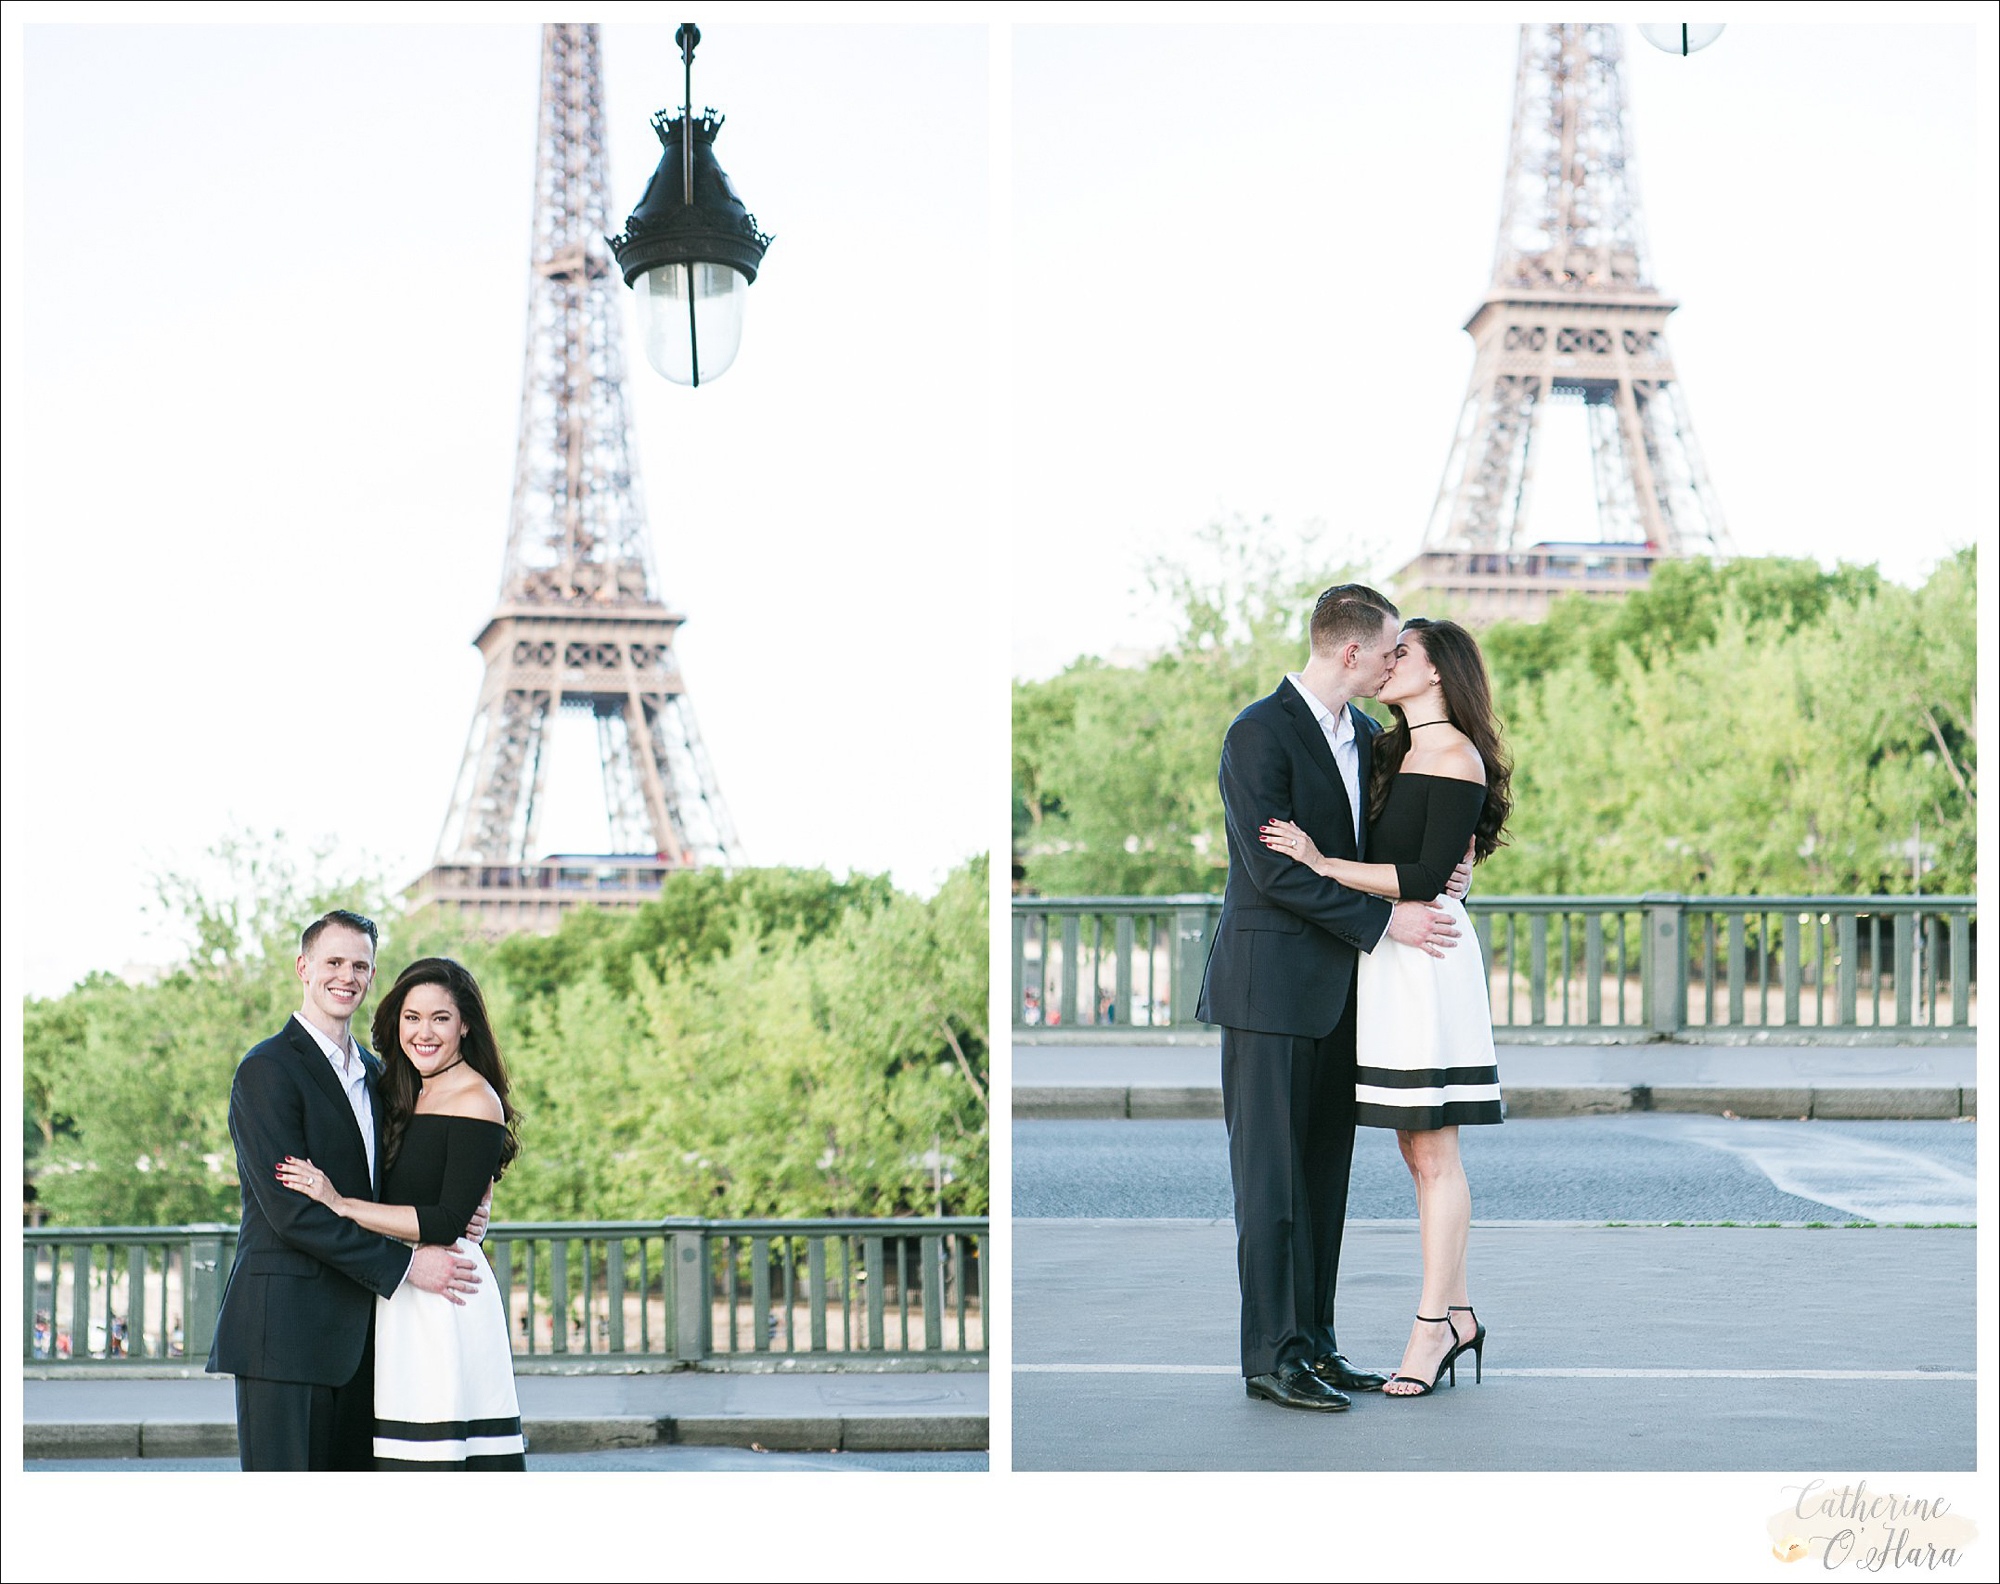 surprise proposal engagement photographer paris france-12.jpg